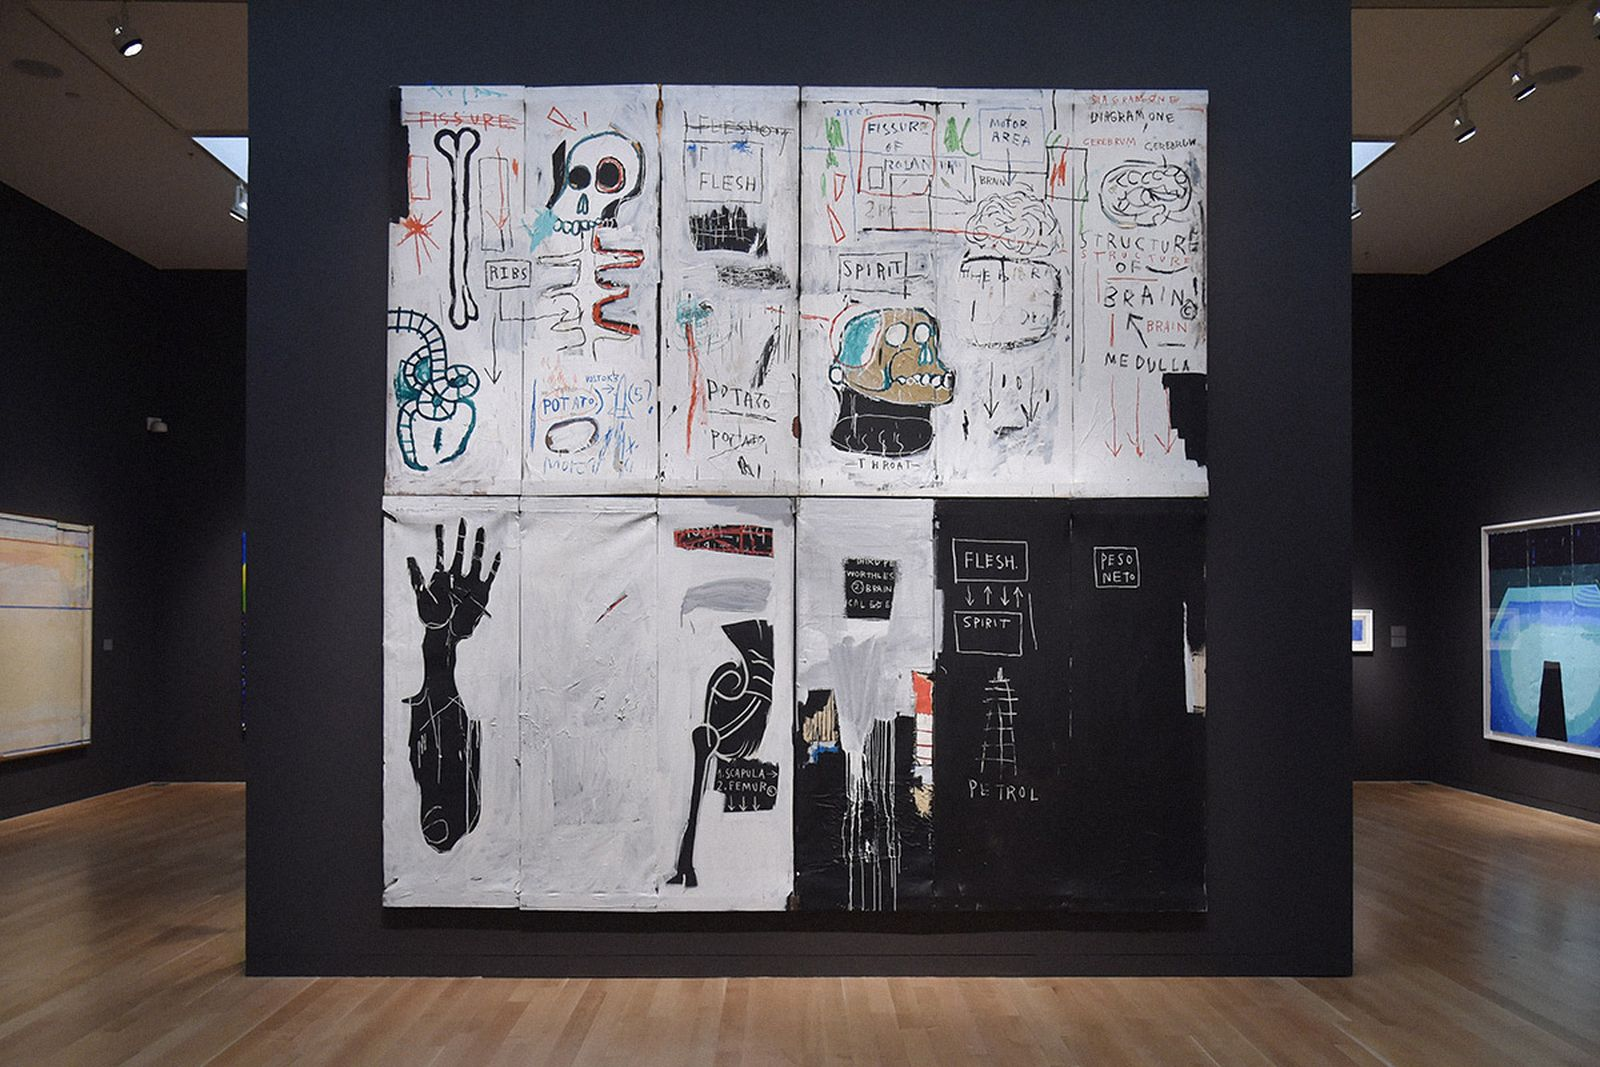 basquiat-impact-on-black-art-world-02